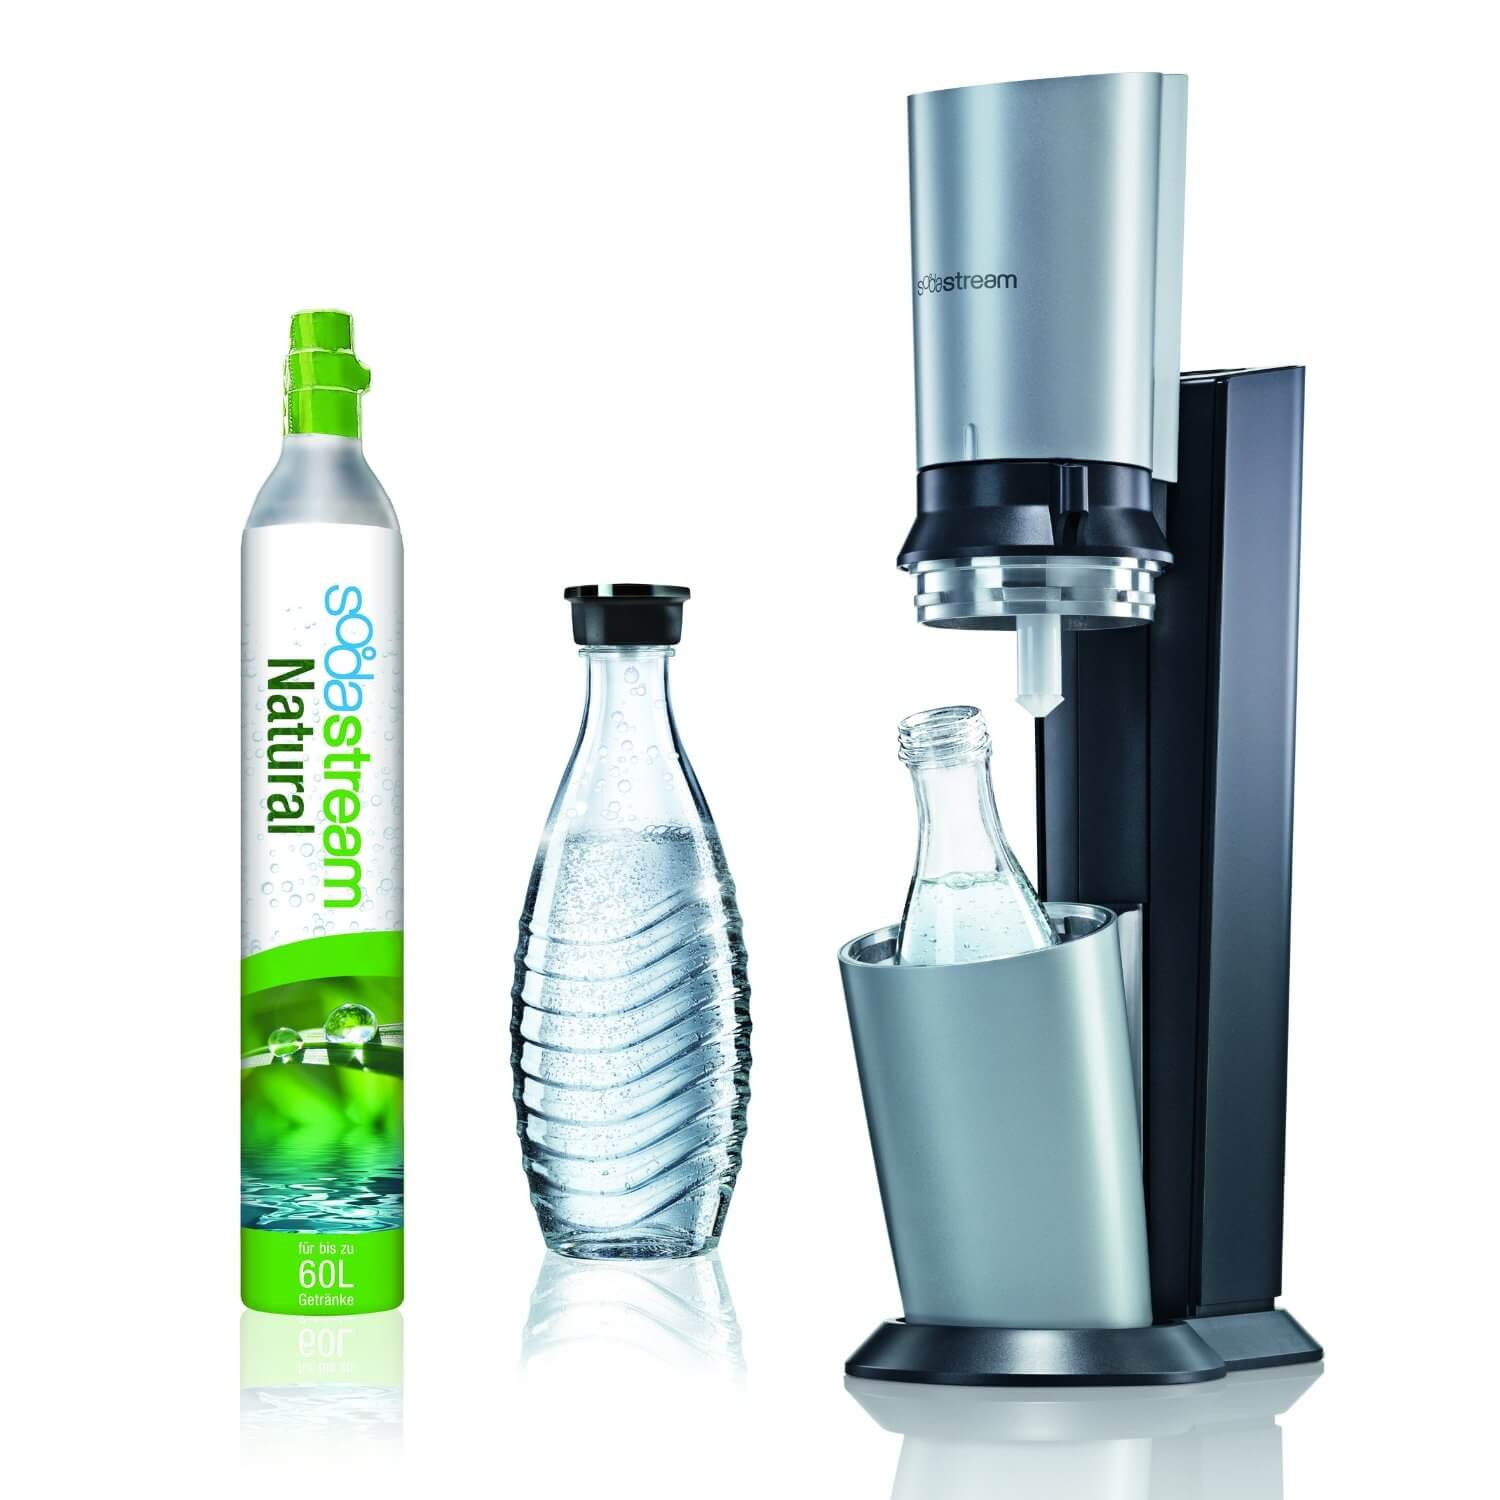 sodastream crystal review sodamakerclub. Black Bedroom Furniture Sets. Home Design Ideas